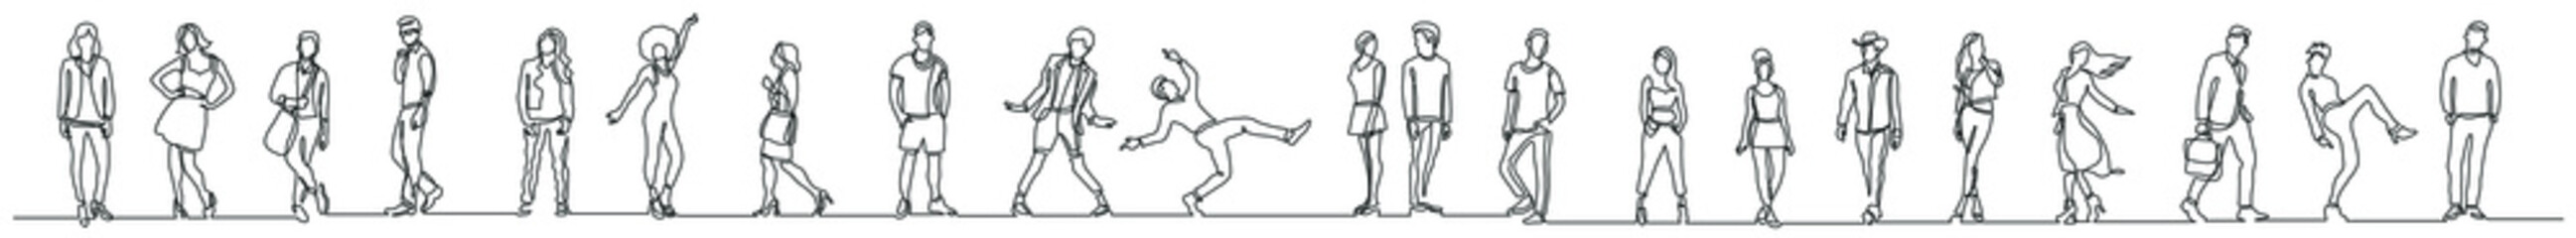 continuous line drawing of group of various regular diverse people standing in a row